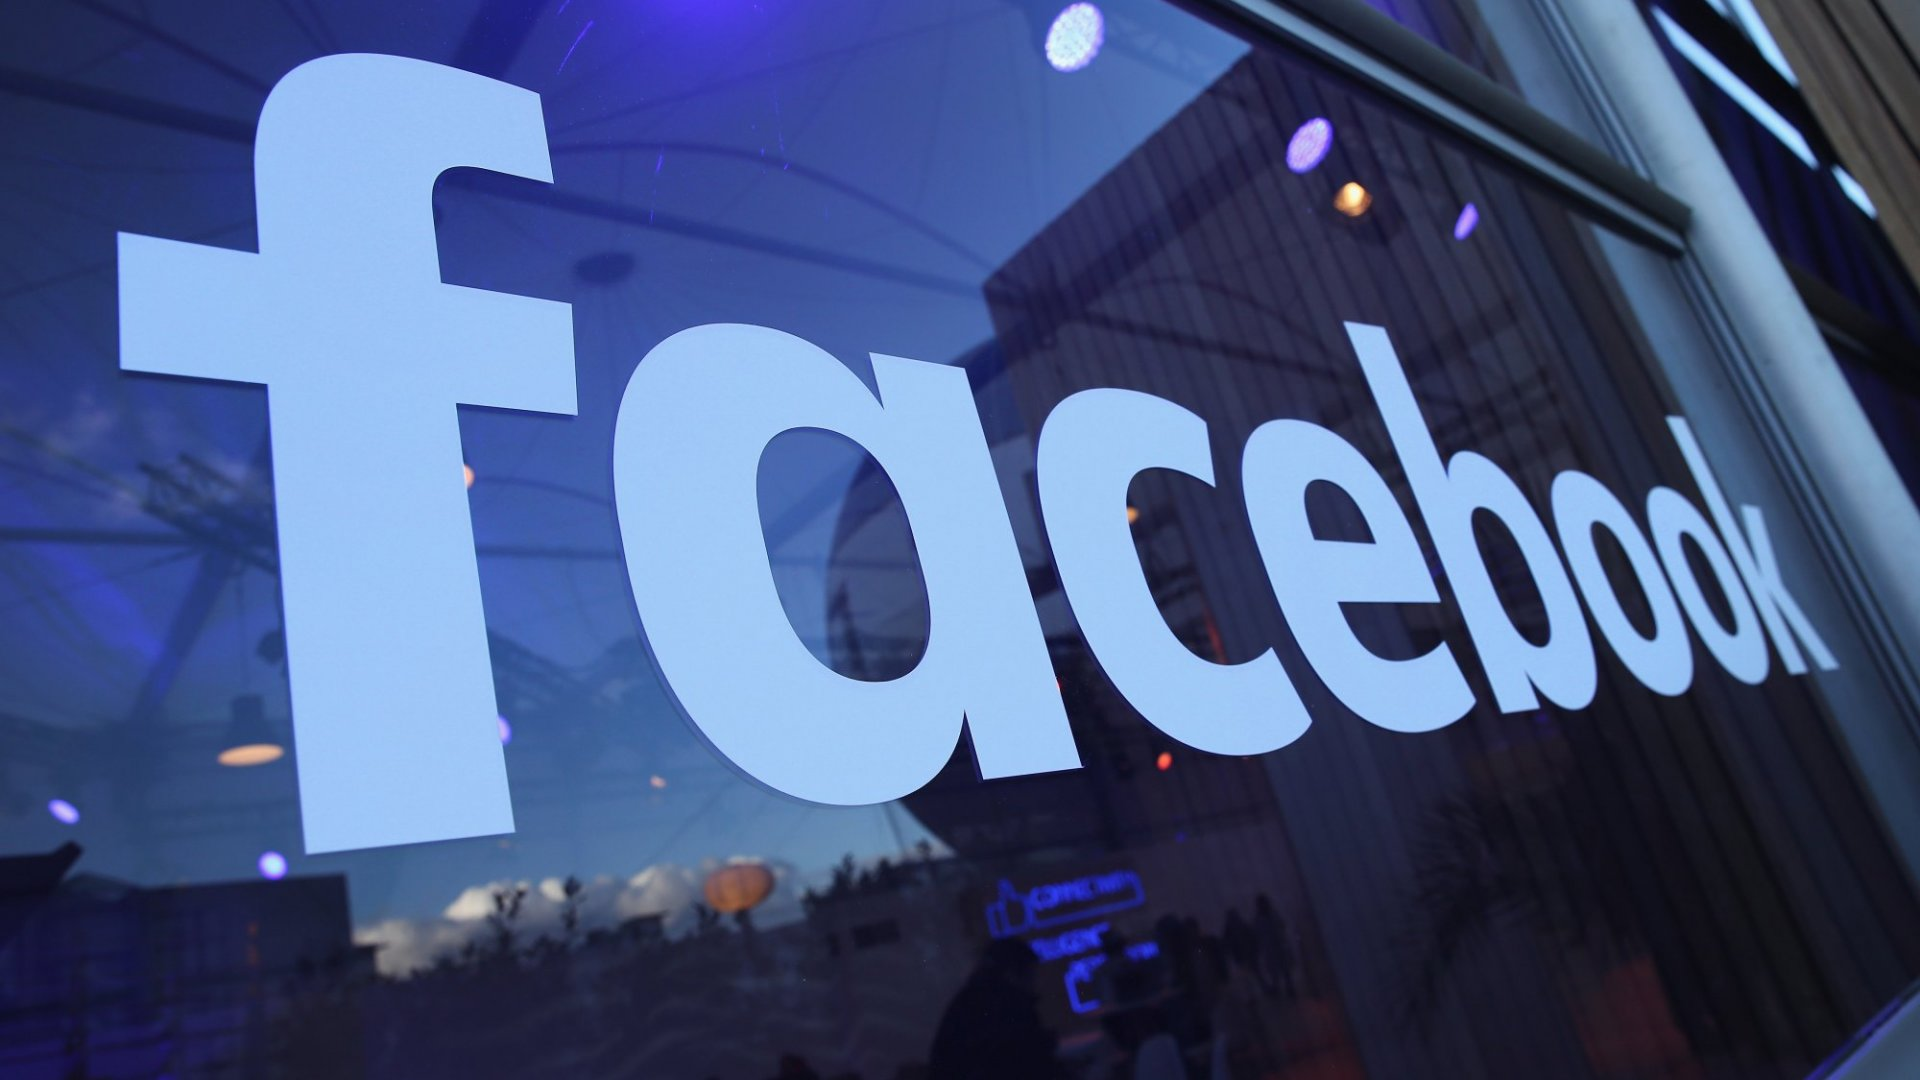 New Report Says Facebook Has a Secretive Blockchain Project, With Uber, Visa, and MasterCard on Board